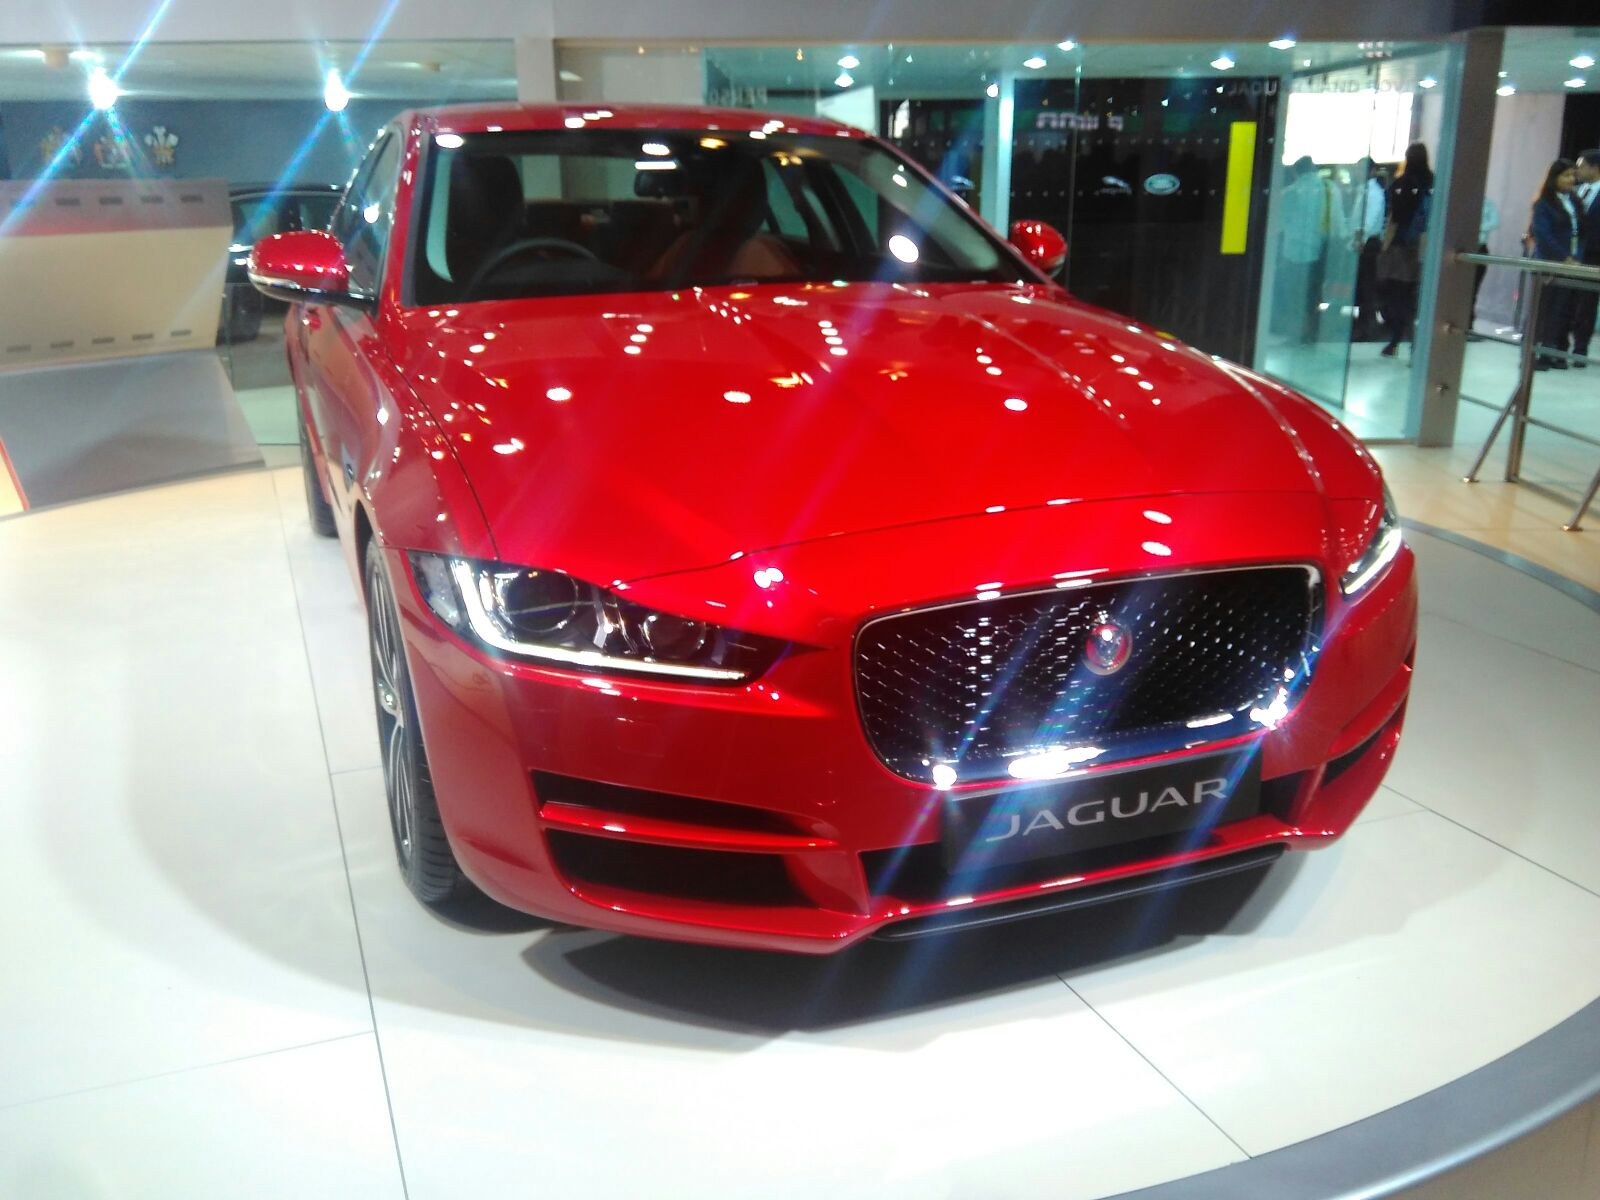 auto expo 2016 jaguar xe launched in india at inr 39 9 lakh motoroids. Black Bedroom Furniture Sets. Home Design Ideas